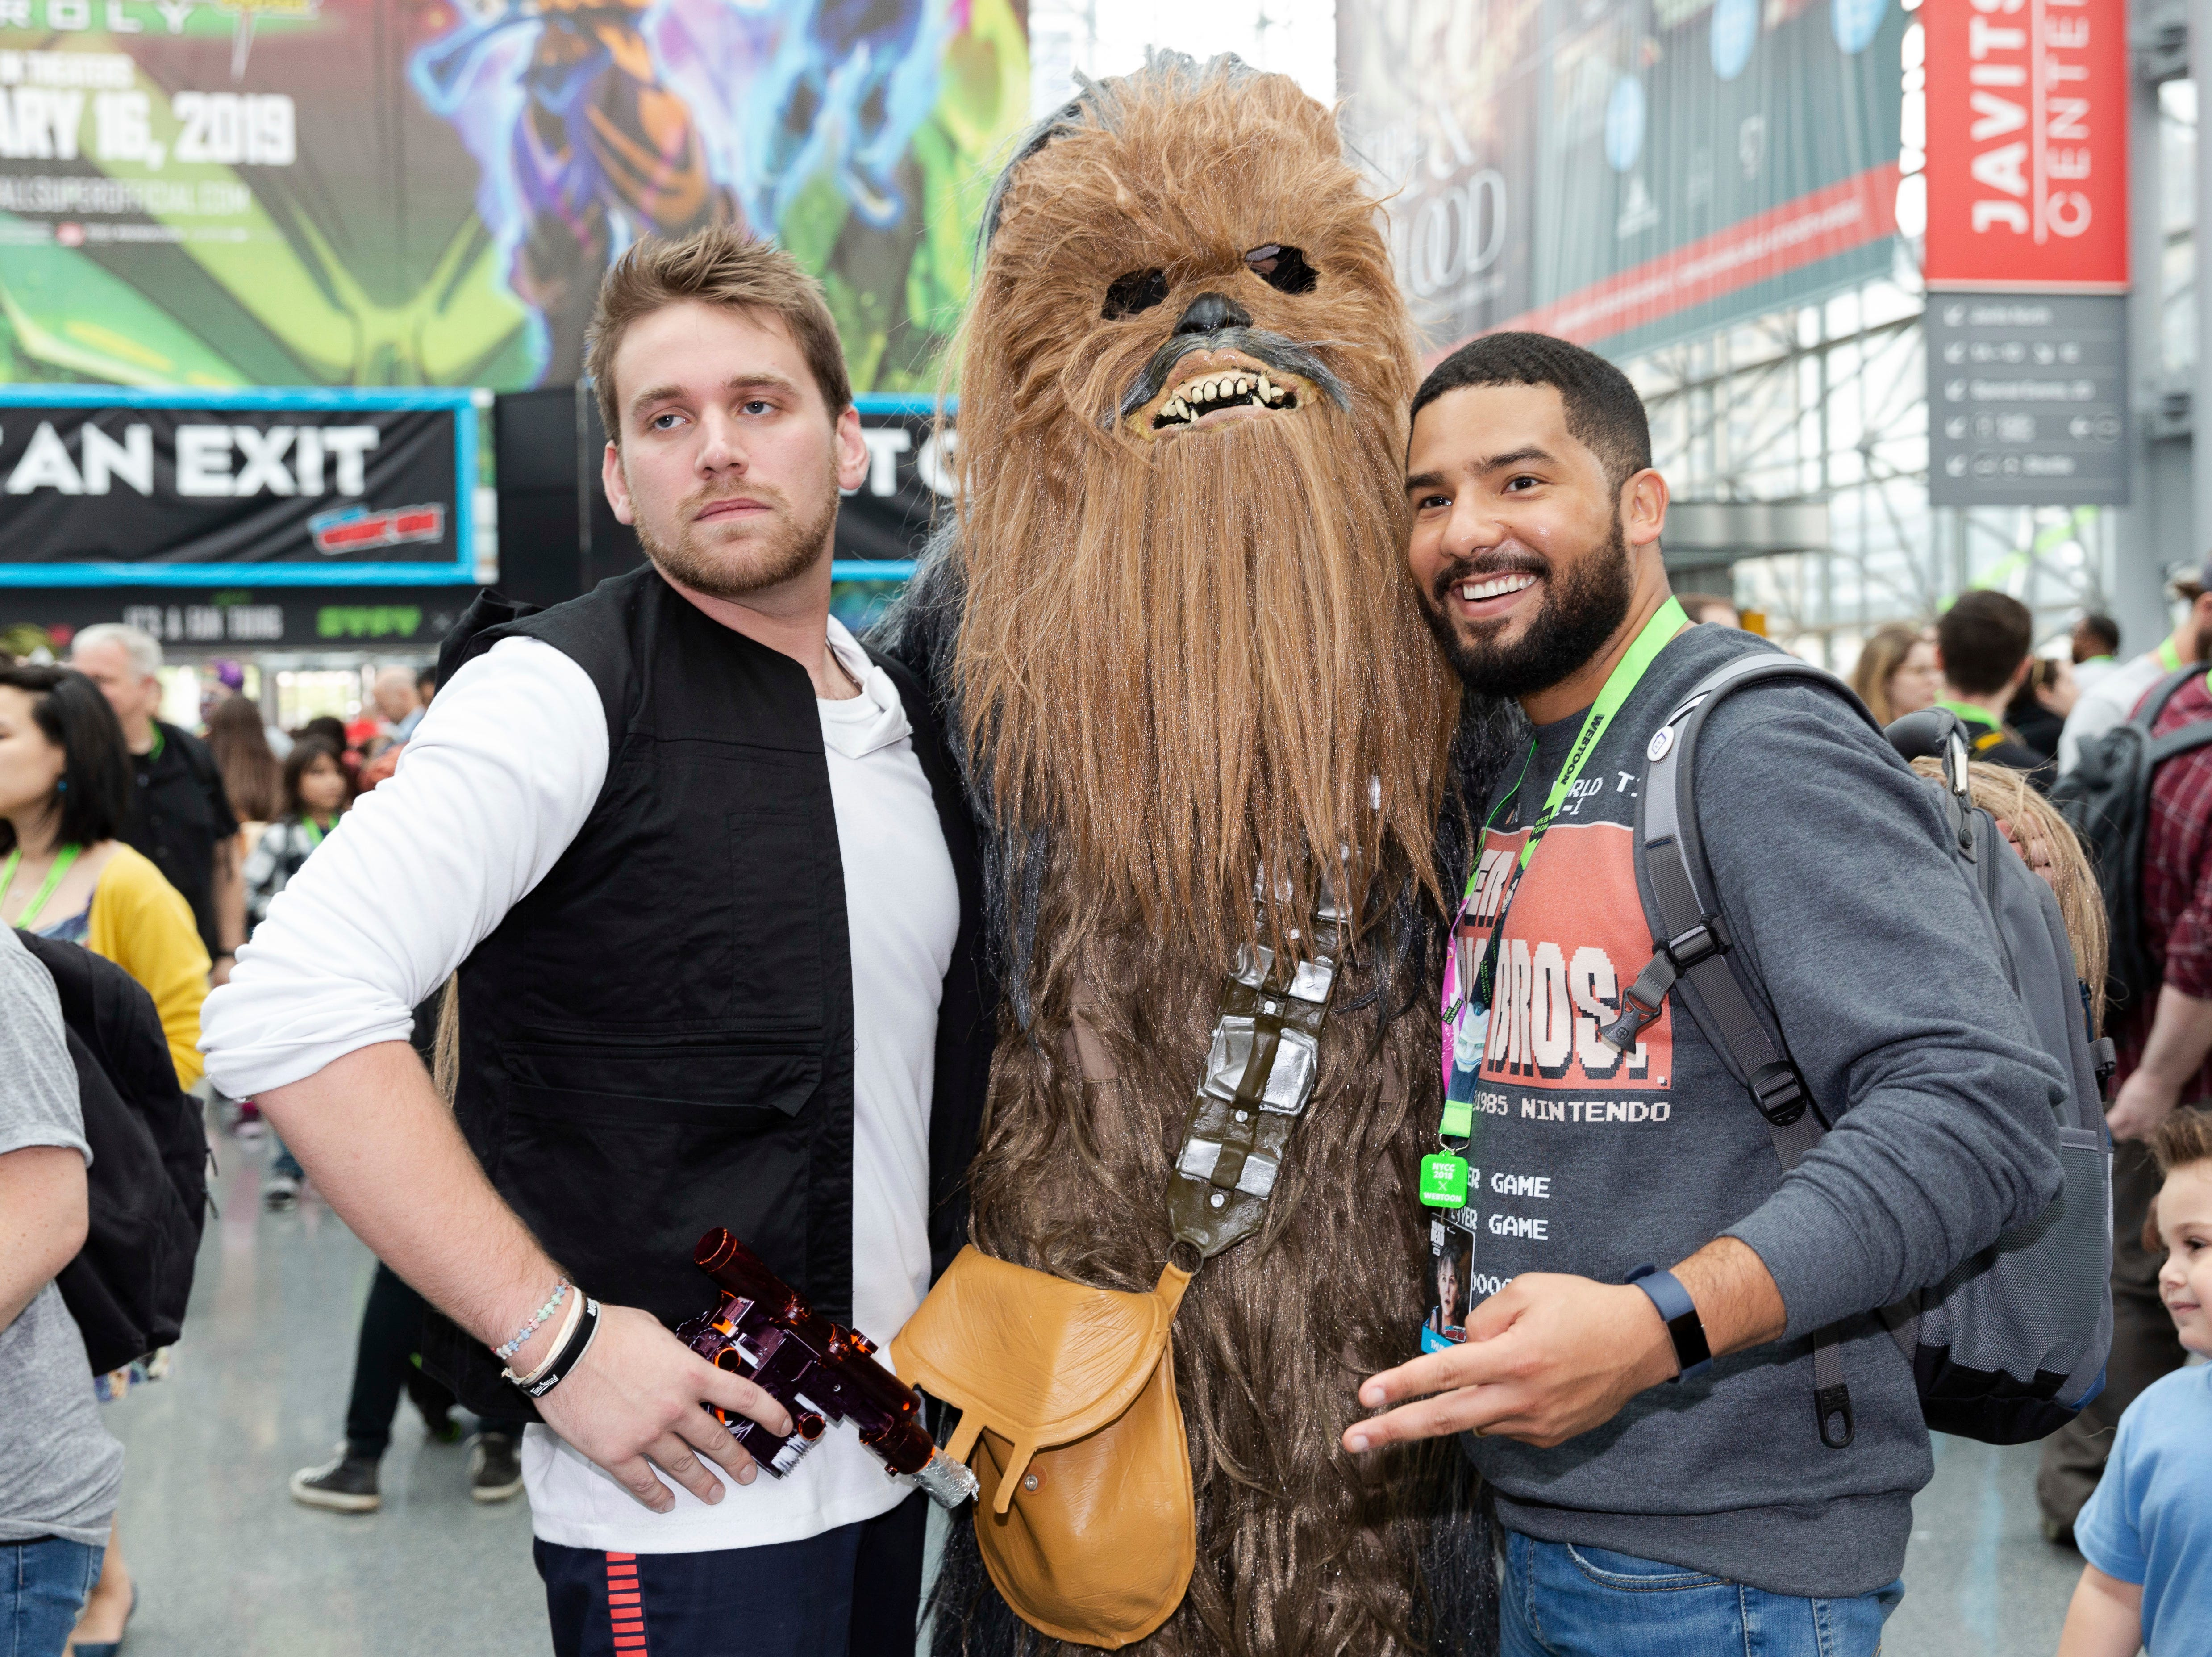 Attendees dressed as Han Solo, left, and Chewbacca, center, from Star Wars pose for a photo with a fan during the first day of New York Comic Con, Thursday, Oct. 4, 2018. (AP Photo/Steve Luciano)